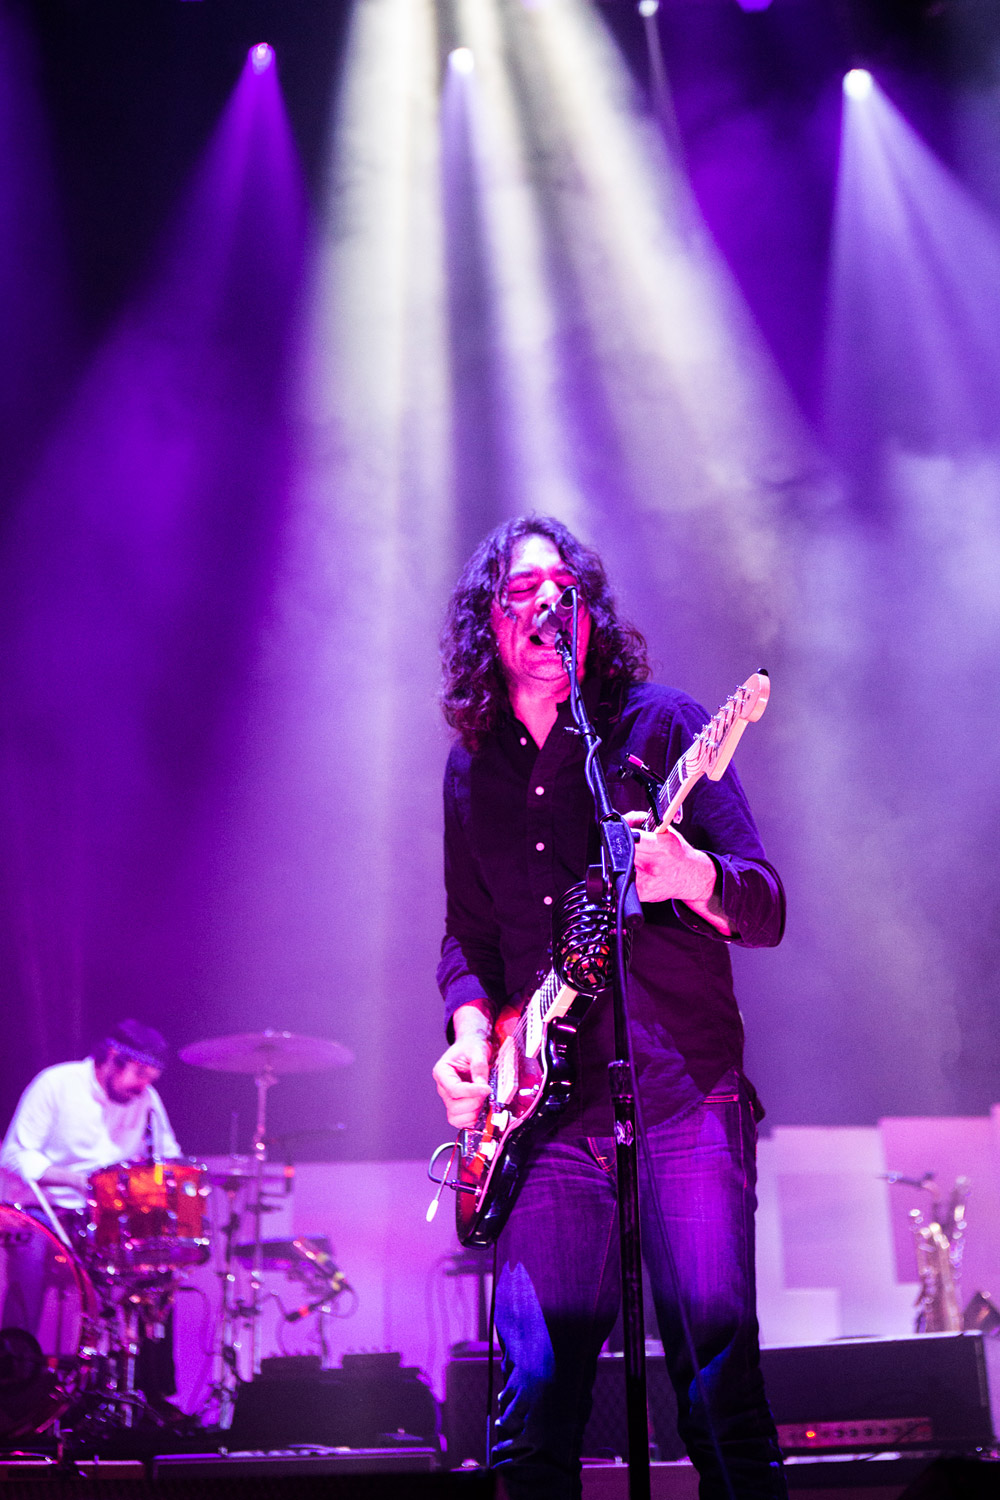 The War on Drugs @ Brixton Acad 02/03/15